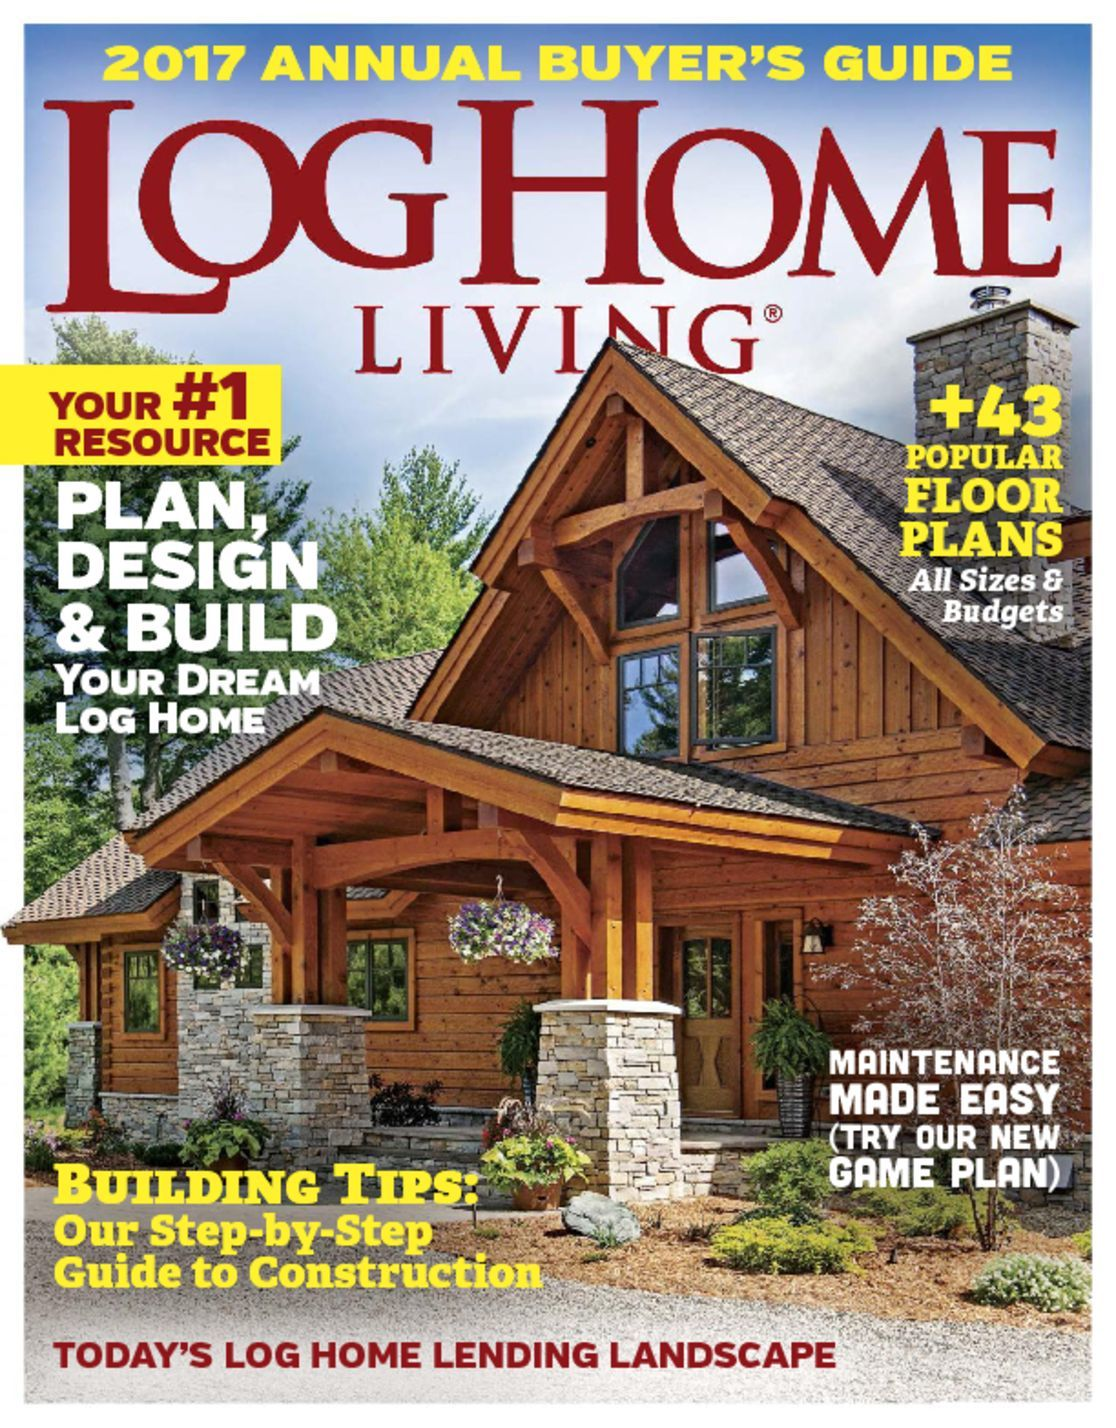 Log home living magazine guide to log homes for Home living magazines